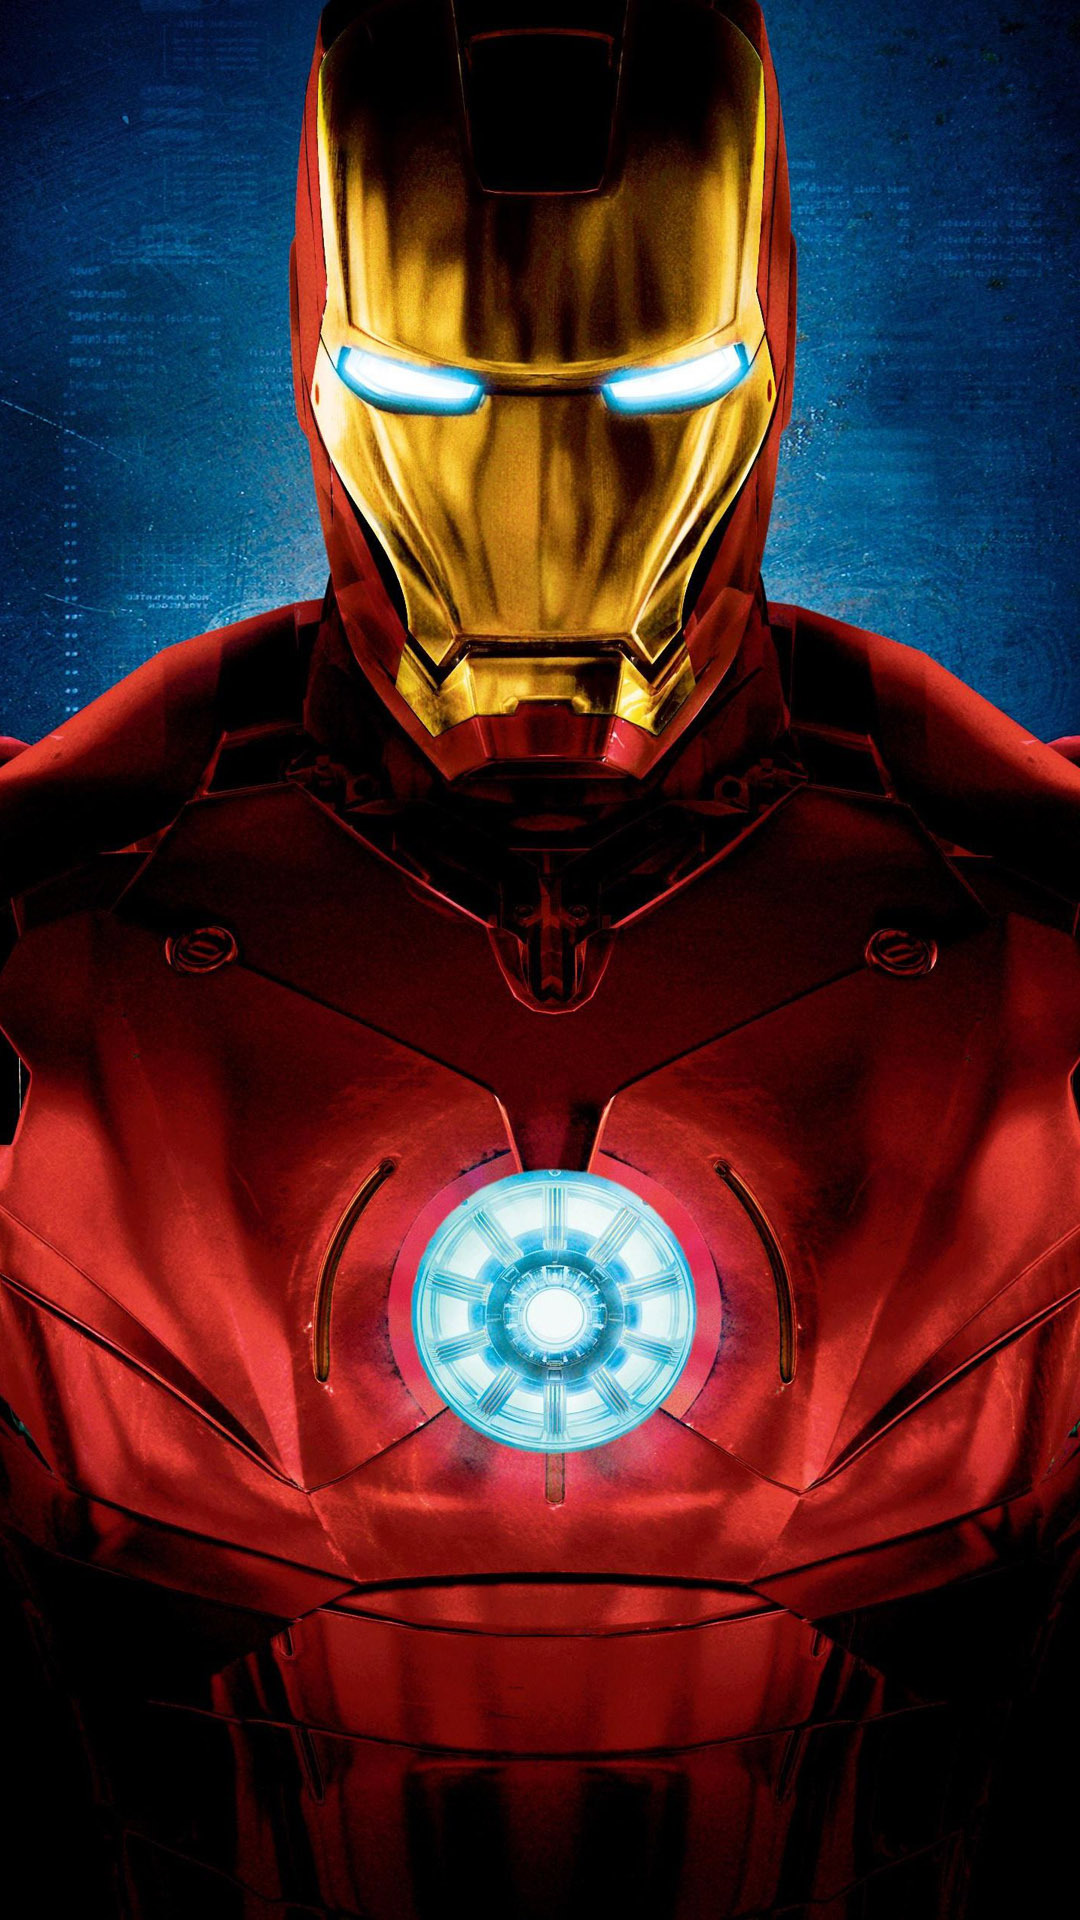 Best Cell Phone Hd Background Iron Man 3d Wallpaper Hd For Android 1080x1920 Download Hd Wallpaper Wallpapertip